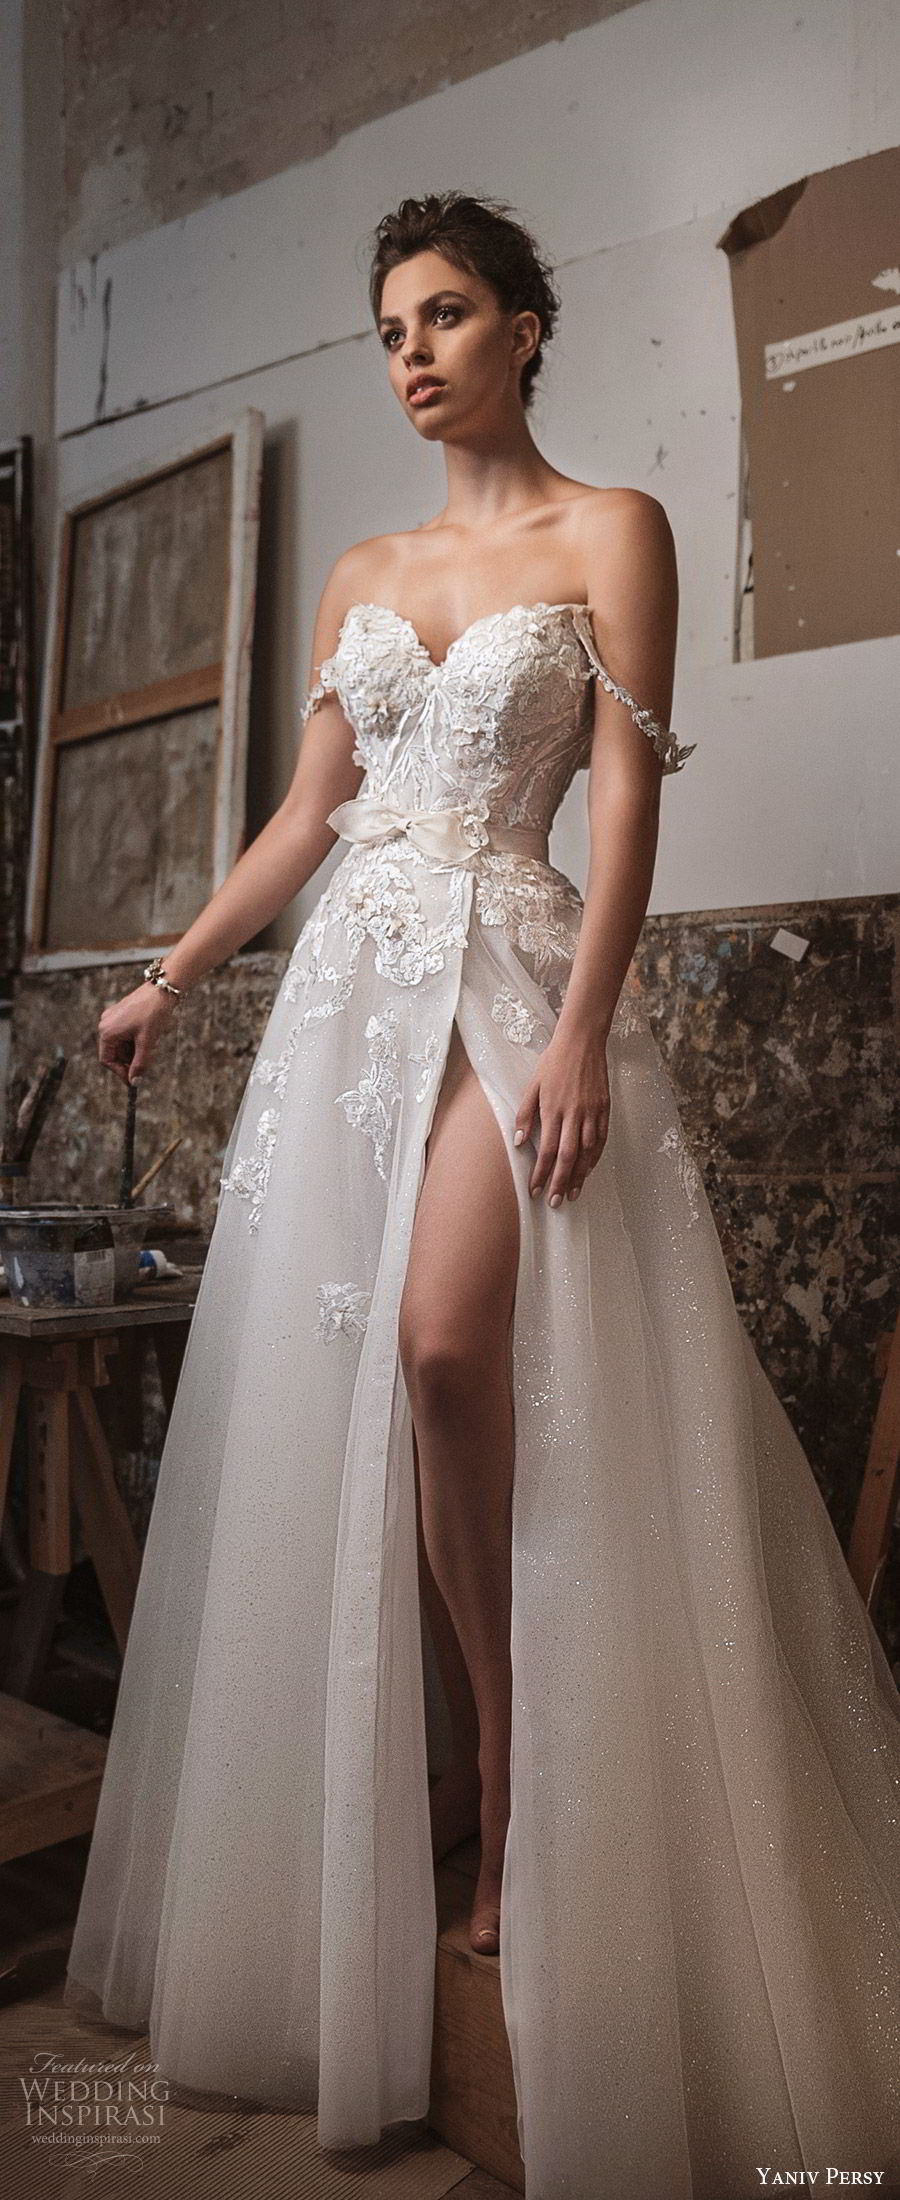 yaniv persy fall 2019 lavish bridal off shoulder sweetheart embellished bodice a line wedding dress high slit skirt romantic sexy glam (1) zv